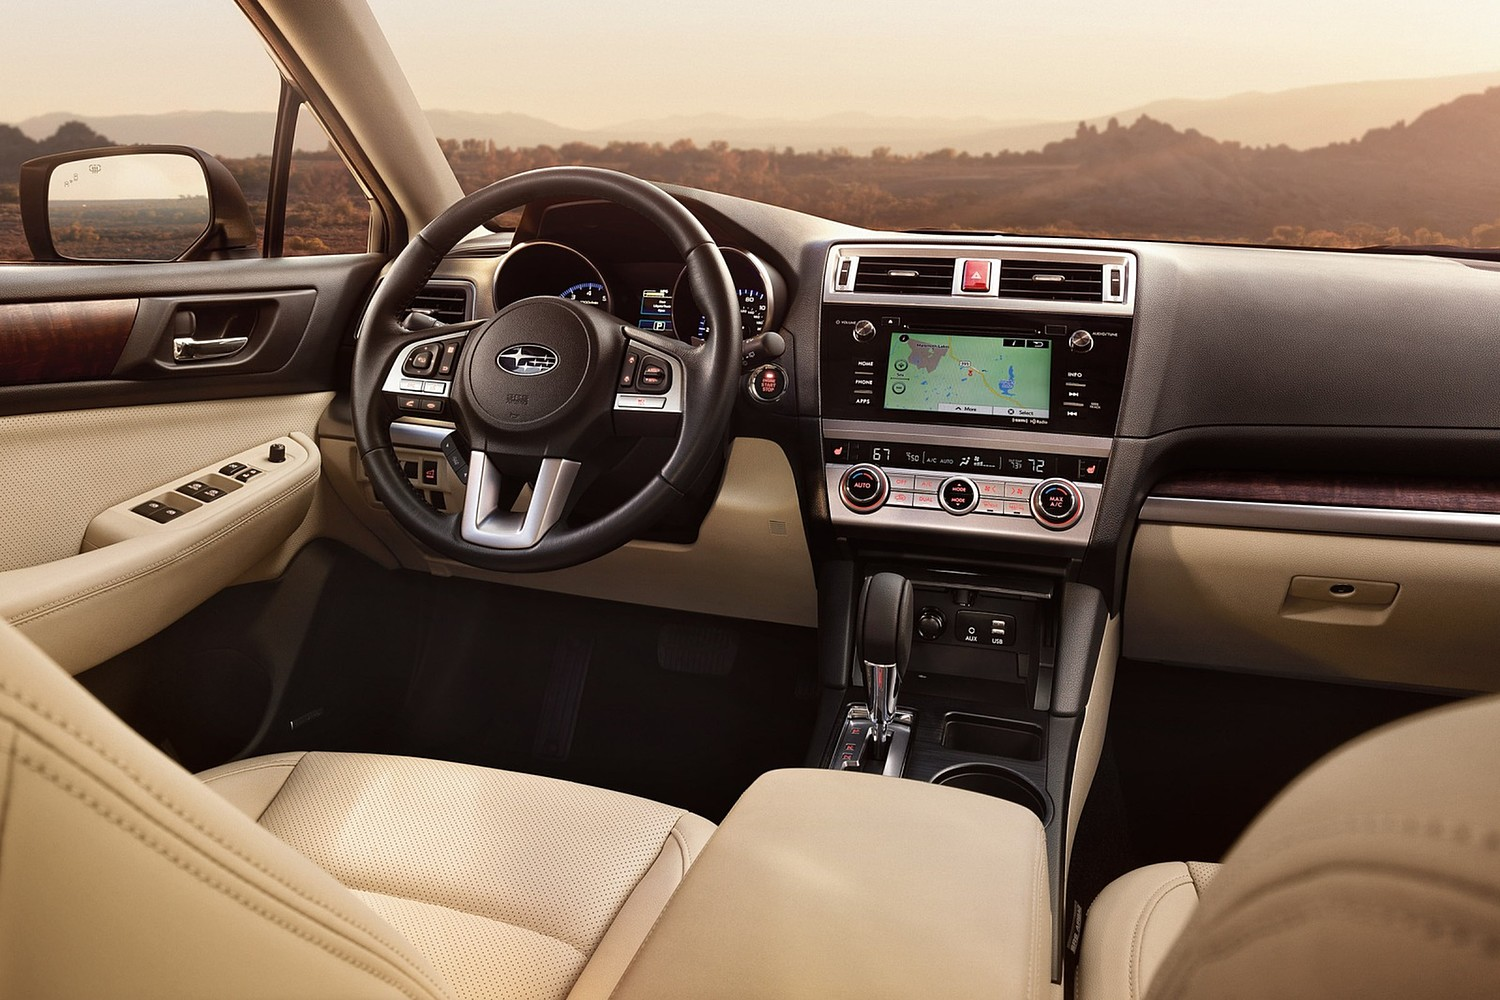 2015 Subaru Outback 3.6R Limited Wagon Interior